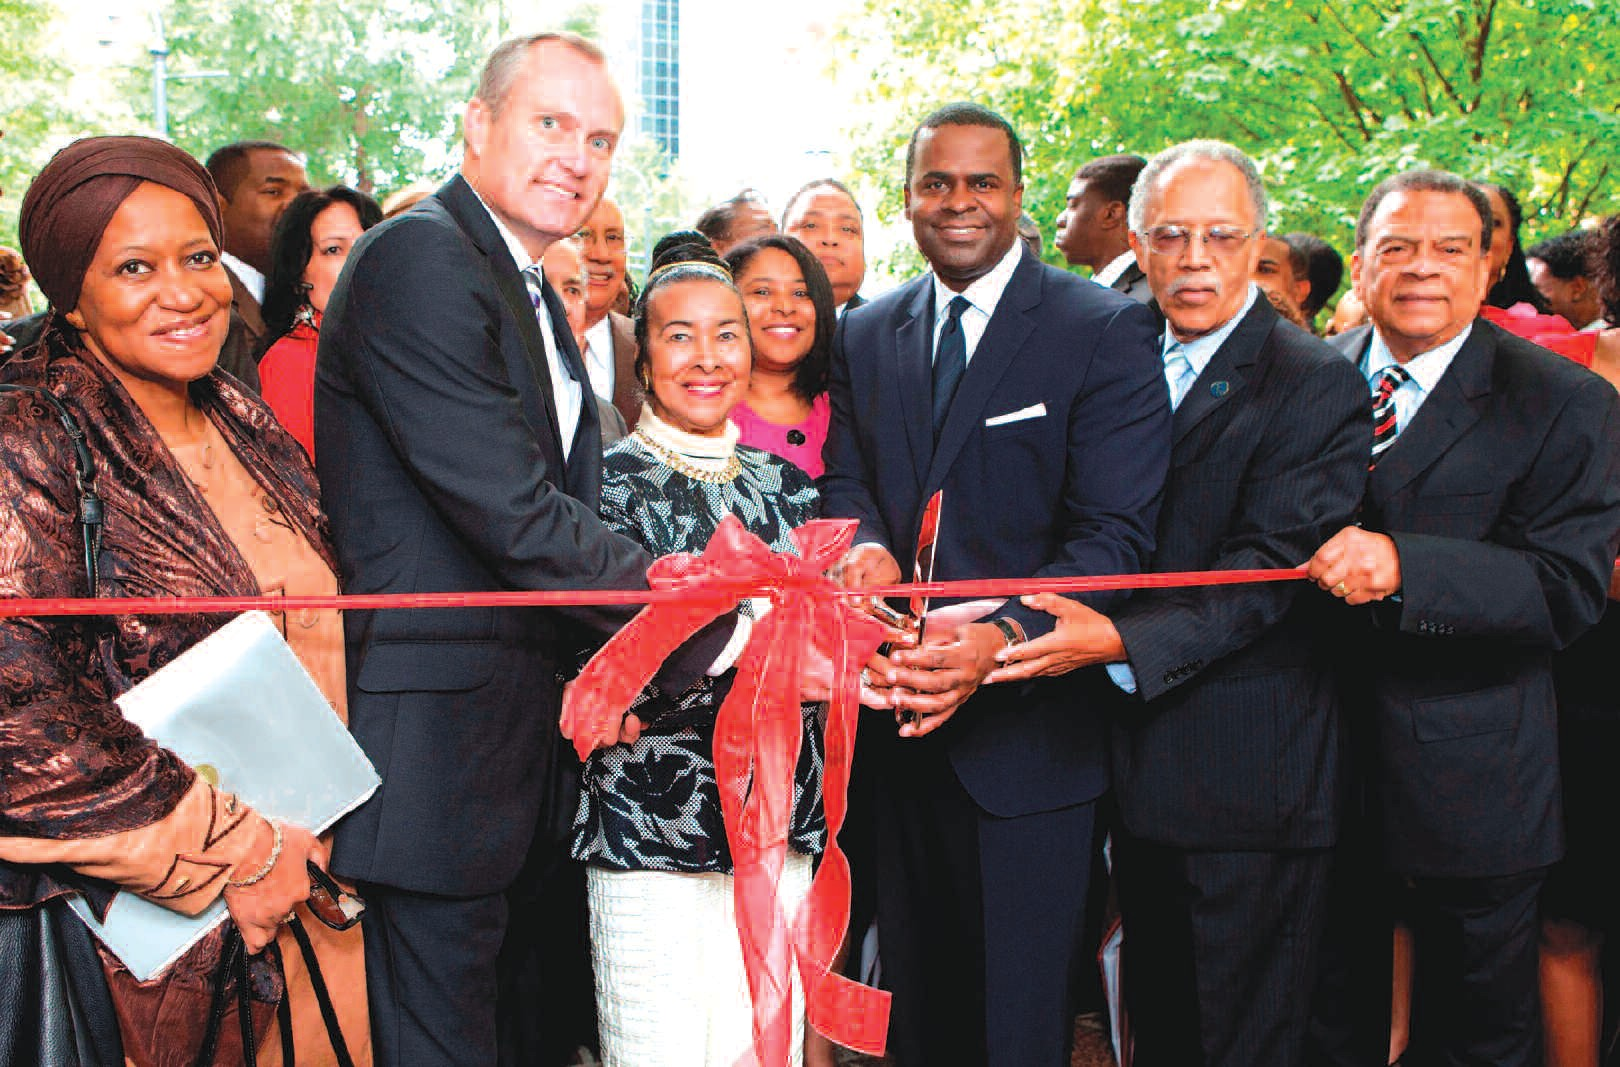 Left to right: Dr. Erieka Bennett, Ambassador, African Union Diaspora, Accra. Ghana; Georgia Lt. Governor Casey Cagle, Ms. Xernona Clayton, Honoree; Atlanta Mayor Kasim Reed; Atlanta City Council member C.T. Martin; and Ambassador Andrew Young